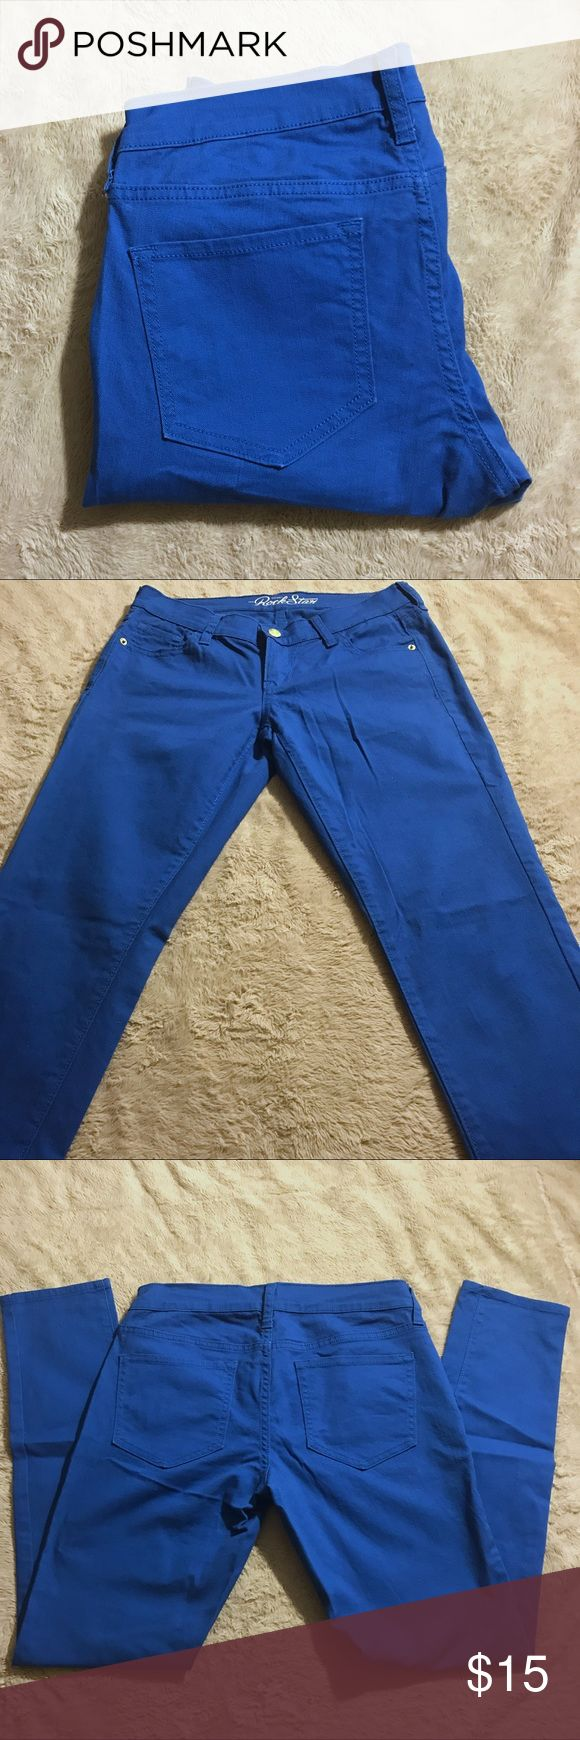 Old Navy Blue Rockstar Jeans size 6 Blue skinnies! Be bold in these bright blue jeans. Pre-owned with no flaws.   Waist: 14.5 in flat Inseam: 29 in Rise: 7.5 in Cuff: 5.5 in flat Measurements are approximate; please allow for human error!  Smoke-free home. Offers welcome! T Old Navy Jeans Skinny